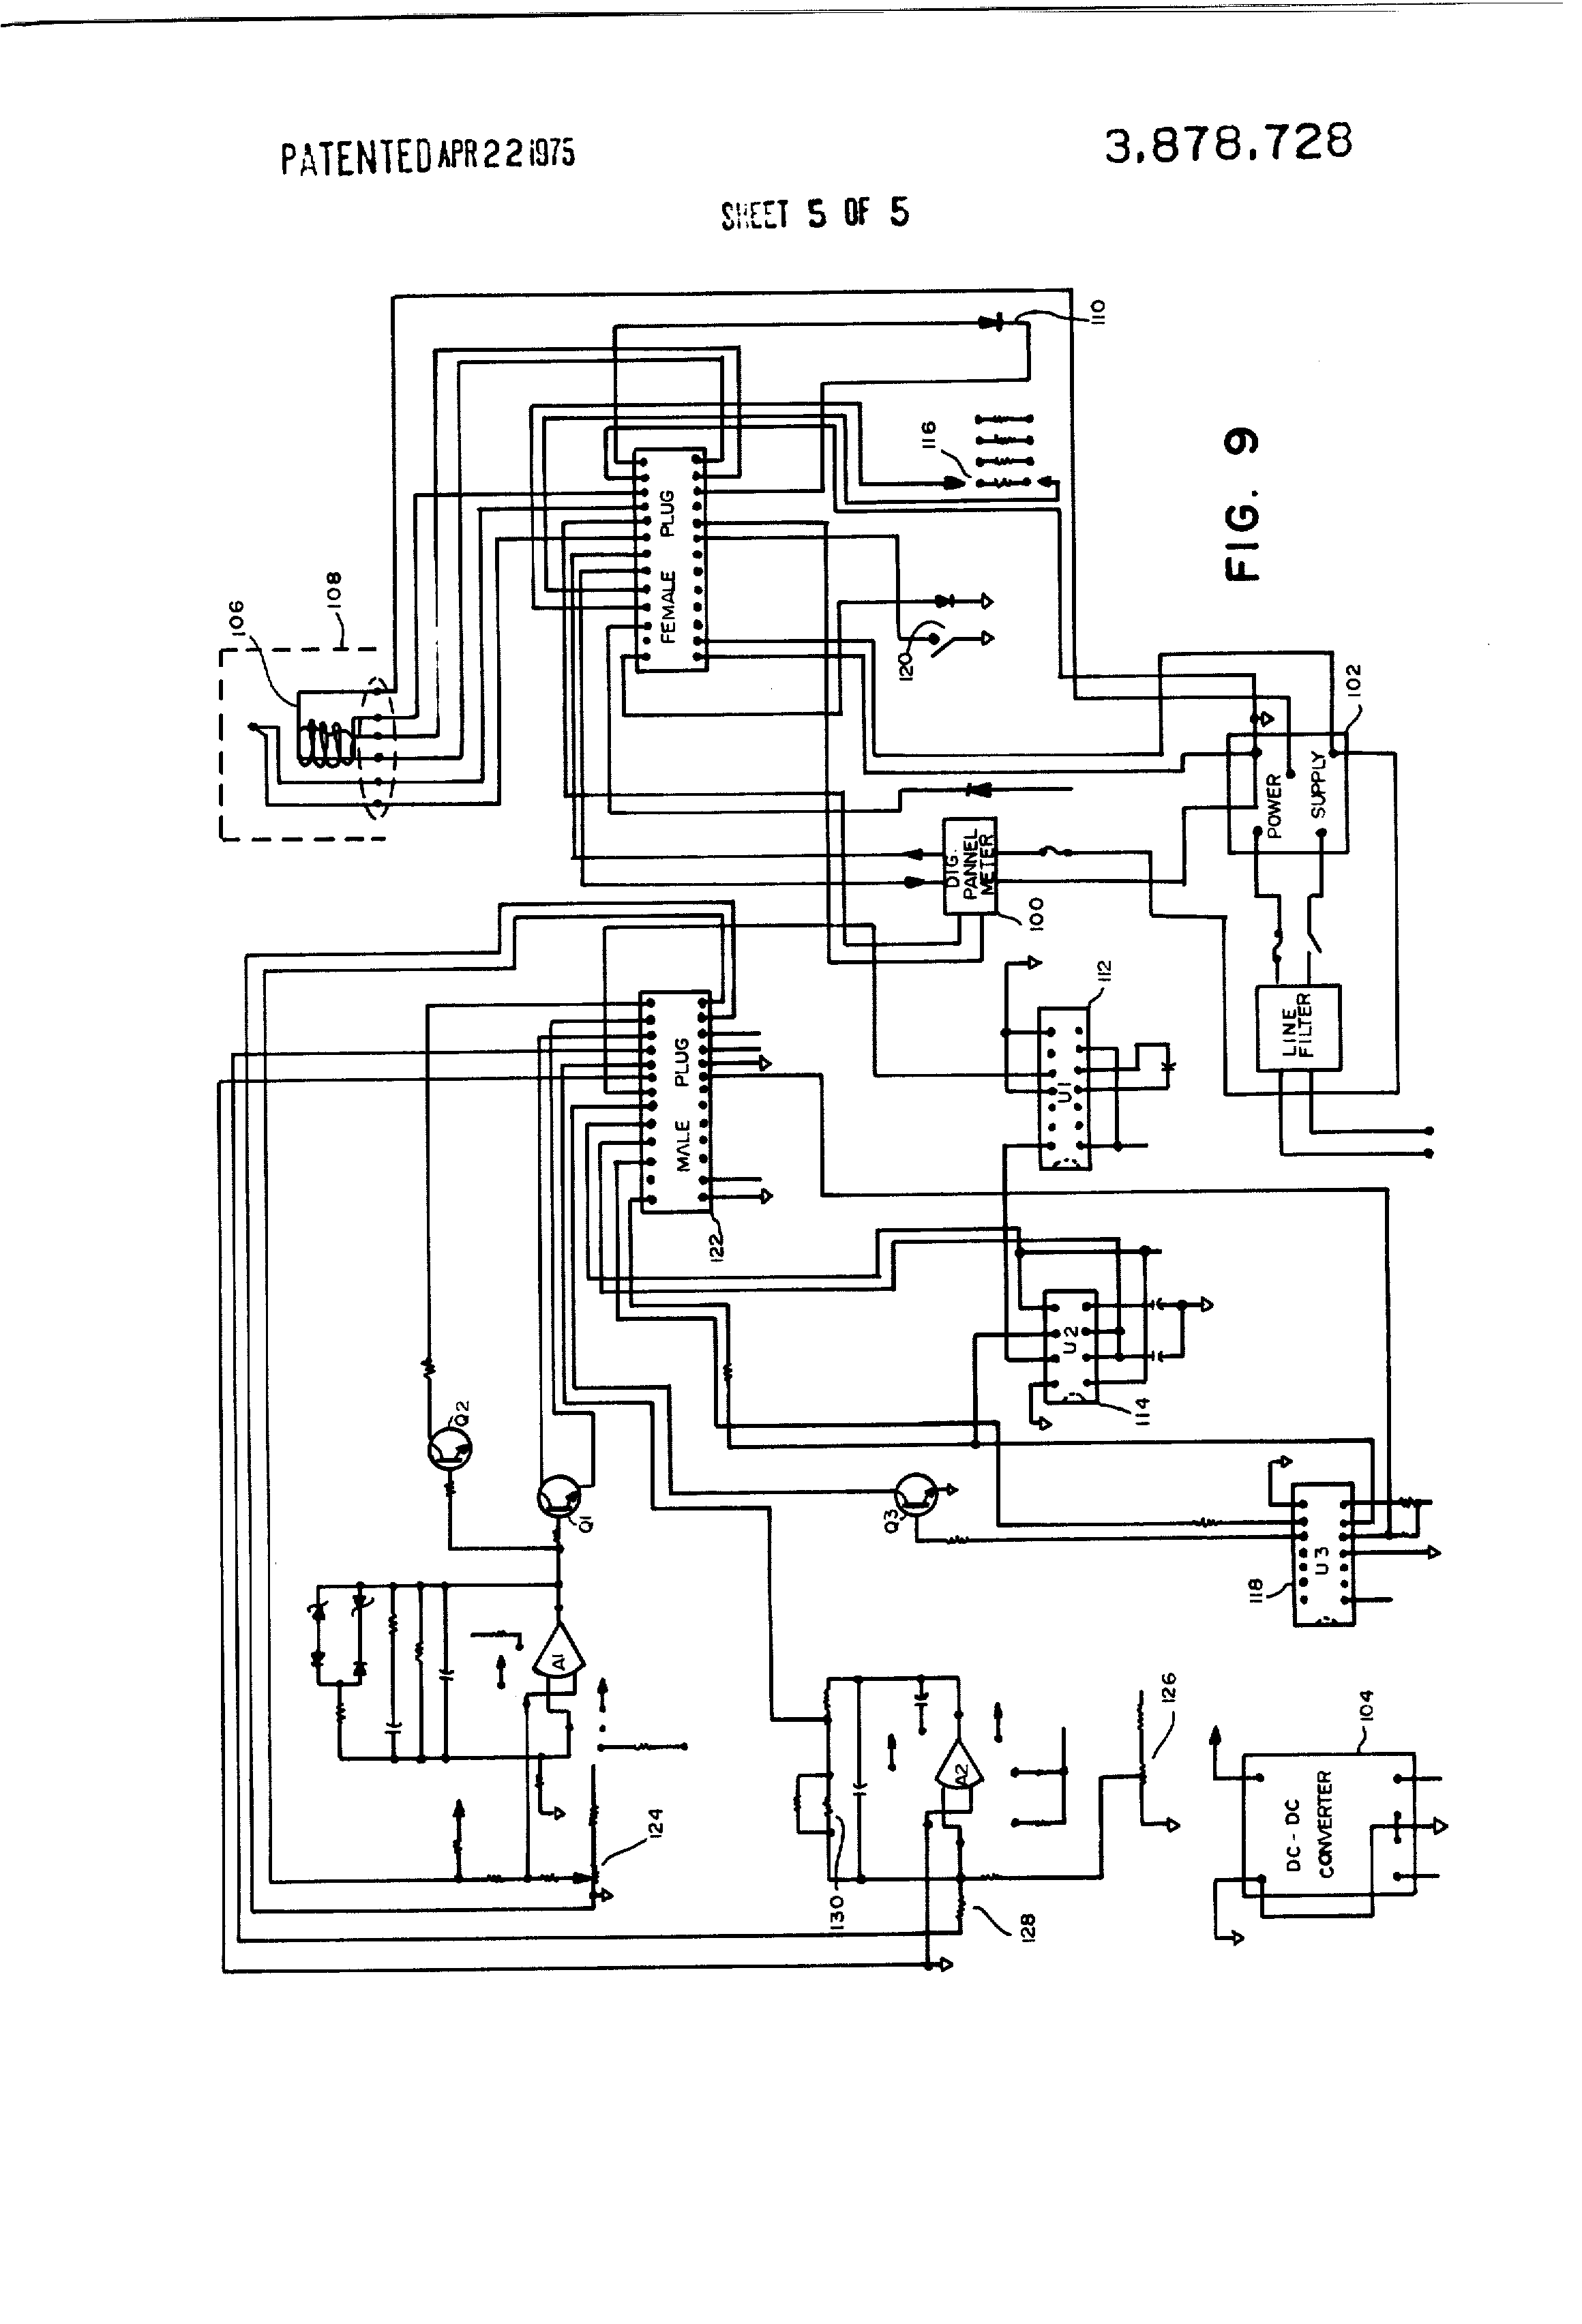 [DVZP_7254]   DIAGRAM] Jlg 1930es Wiring Diagram FULL Version HD Quality Wiring Diagram -  WIRINGJ11.CONCESSIONARIABELOGISENIGALLIA.IT | Skyjack Lift Wiring Diagrams |  | concessionariabelogisenigallia.it